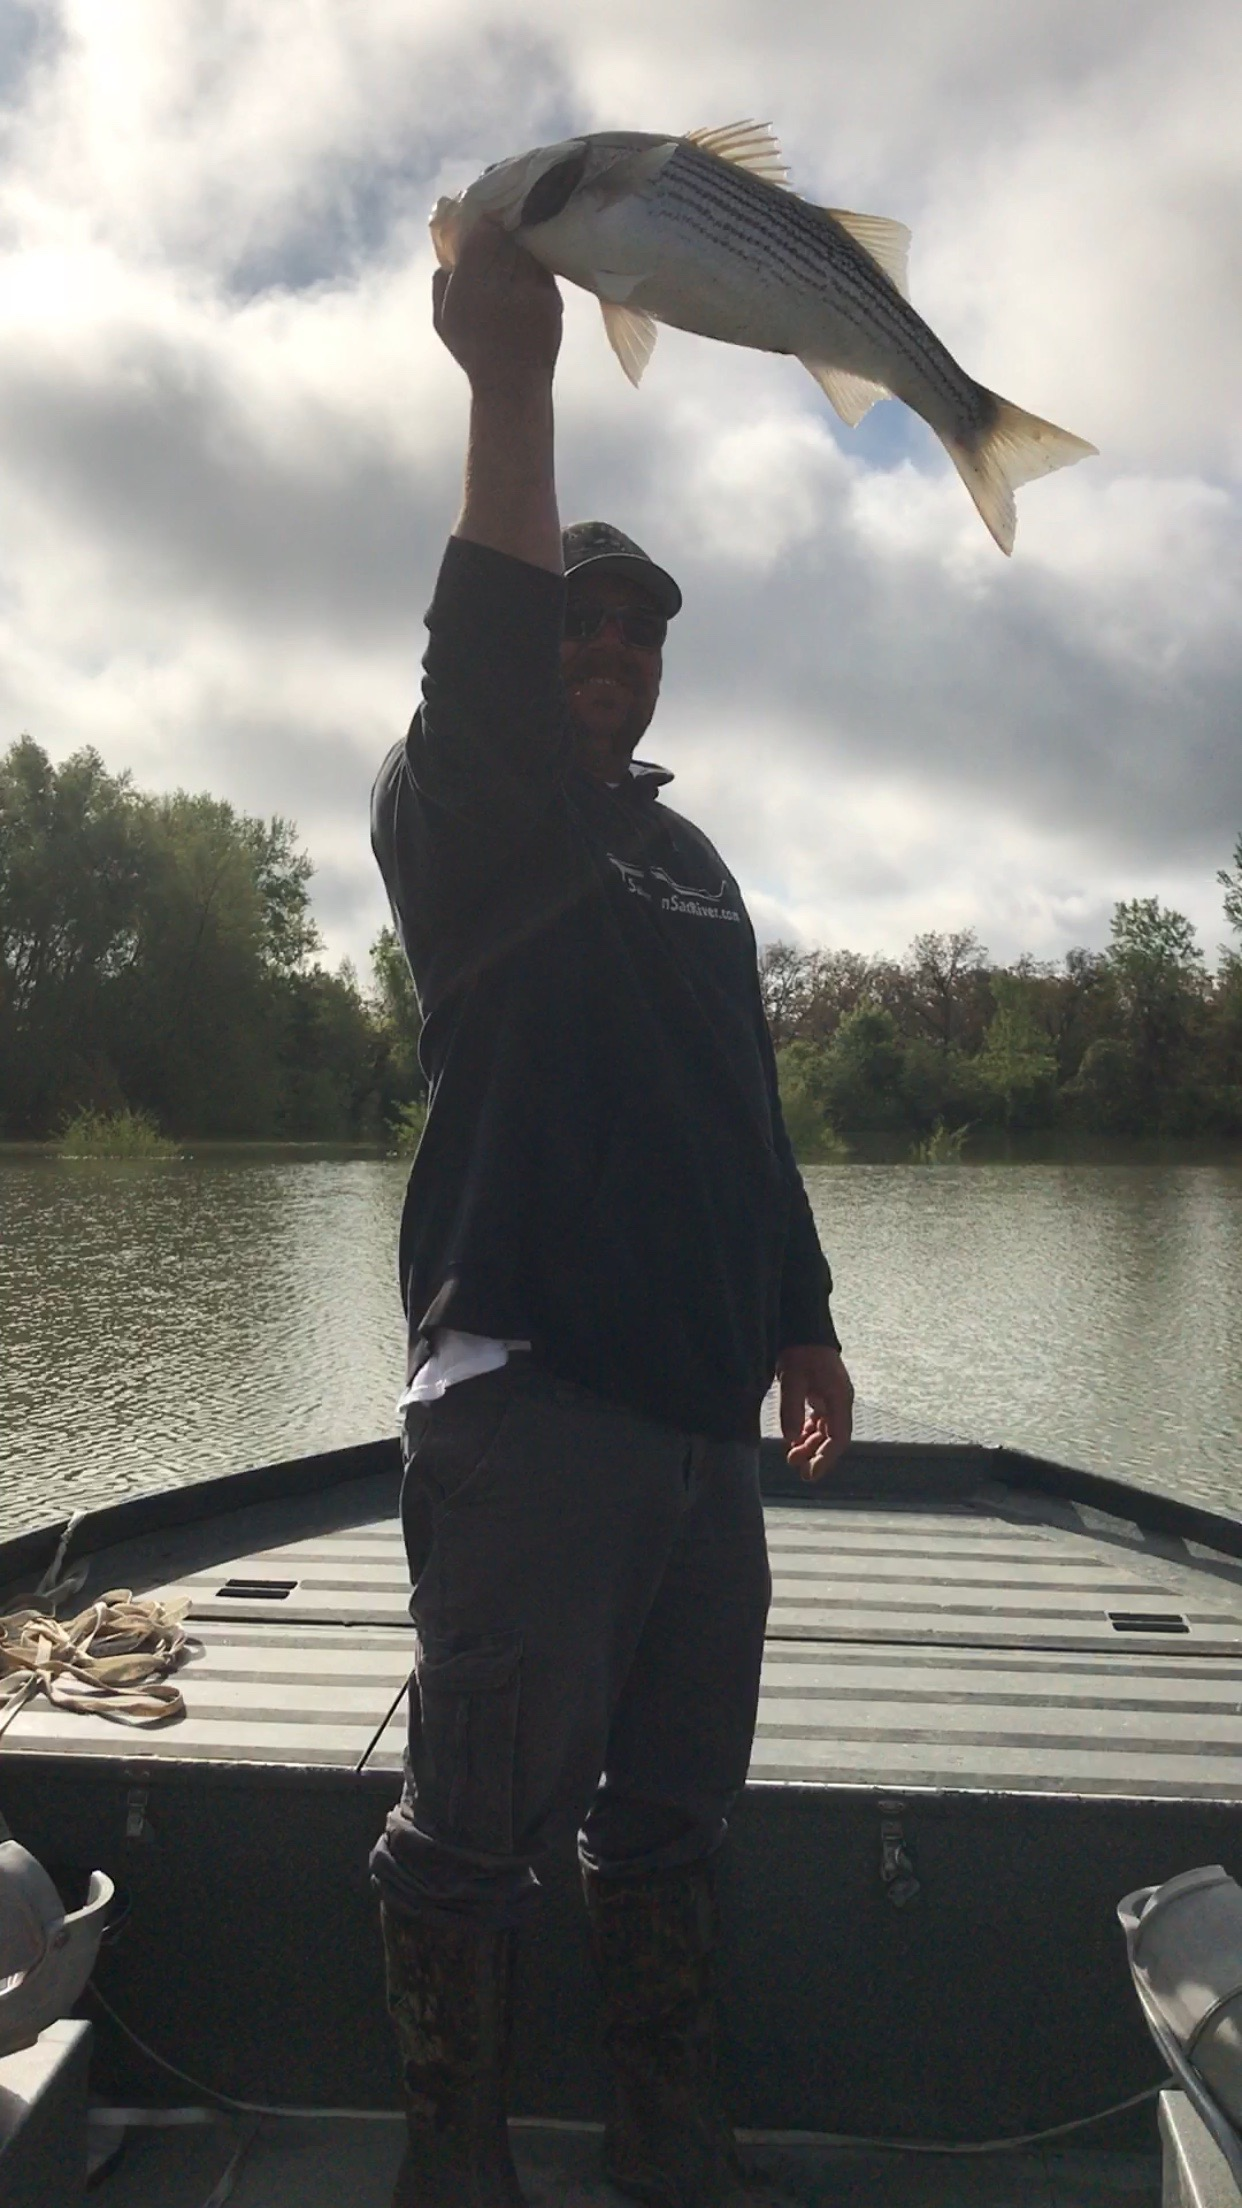 A quality striped bass caught by  salmonsacriver.com striped bass fishing guide Mike Rasmussen on the Sacramento River in Colusa, Ca on April 18, 2017 while trolling broken back Yo-Zuri lures.